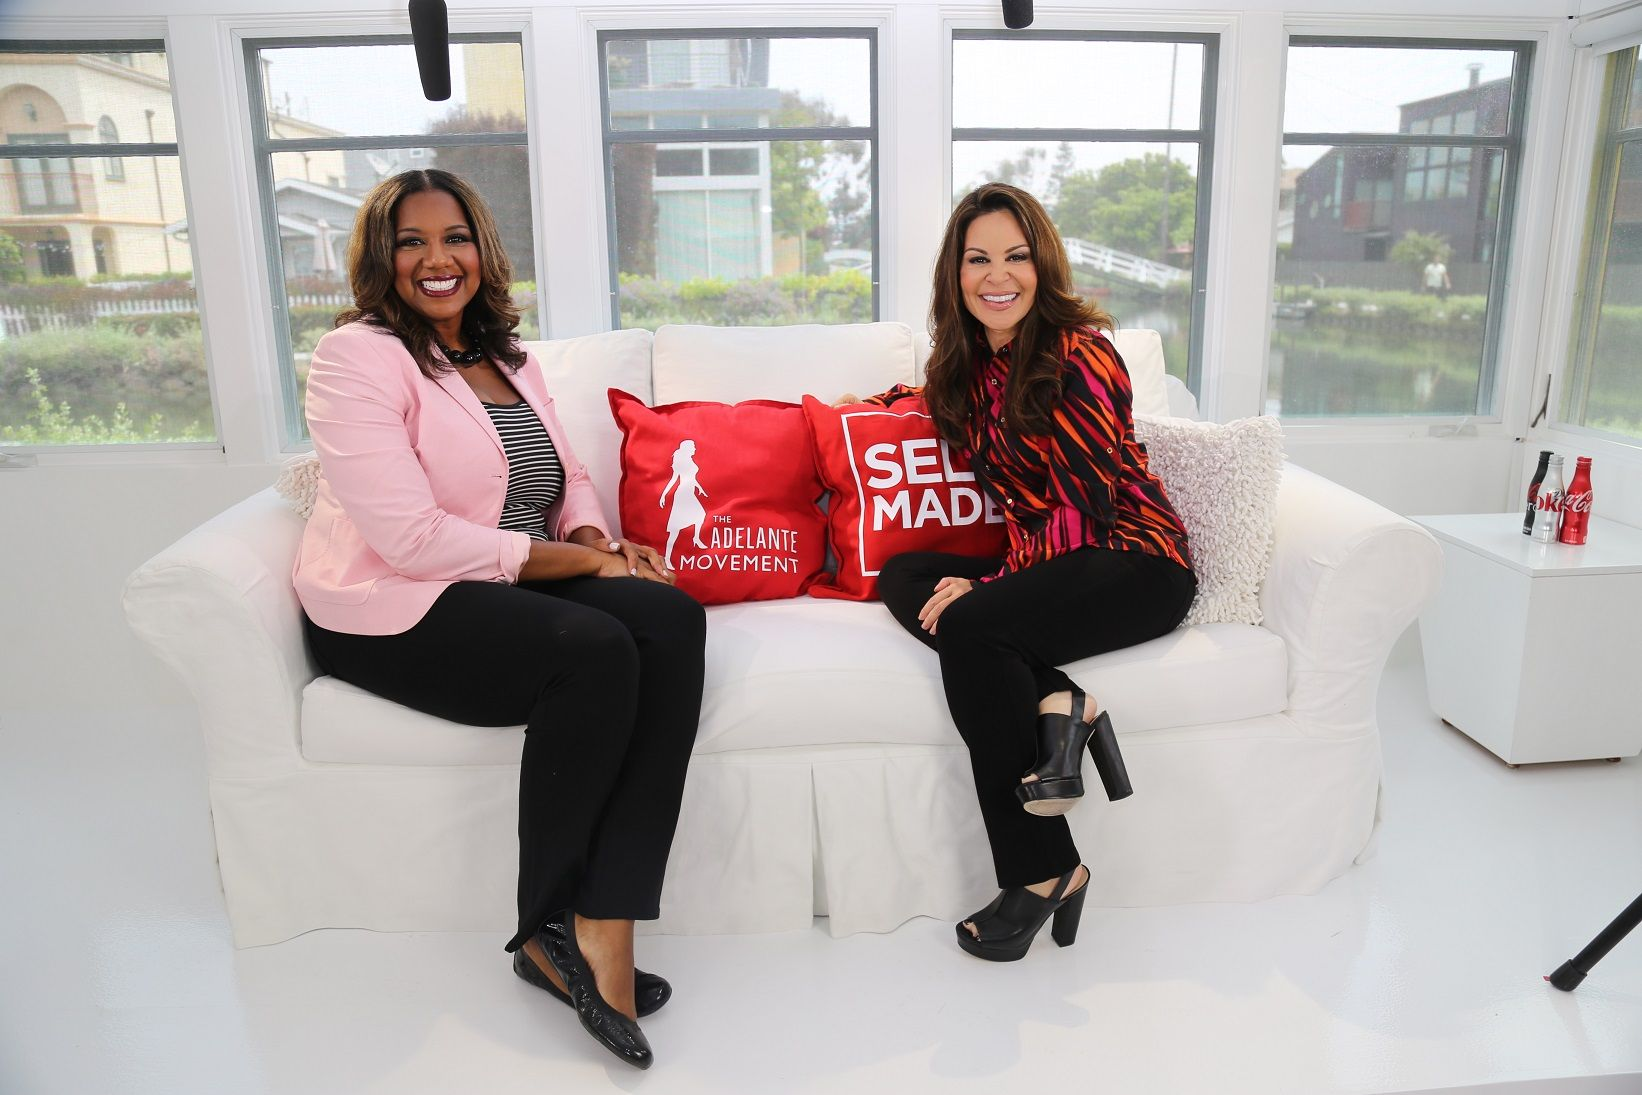 Exclusive interview with MacDonald's Franchise owner Nicole Enearu and Nely Galán of the Adelante Movement presented by Coca-Cola. #SelfMade #Adelante